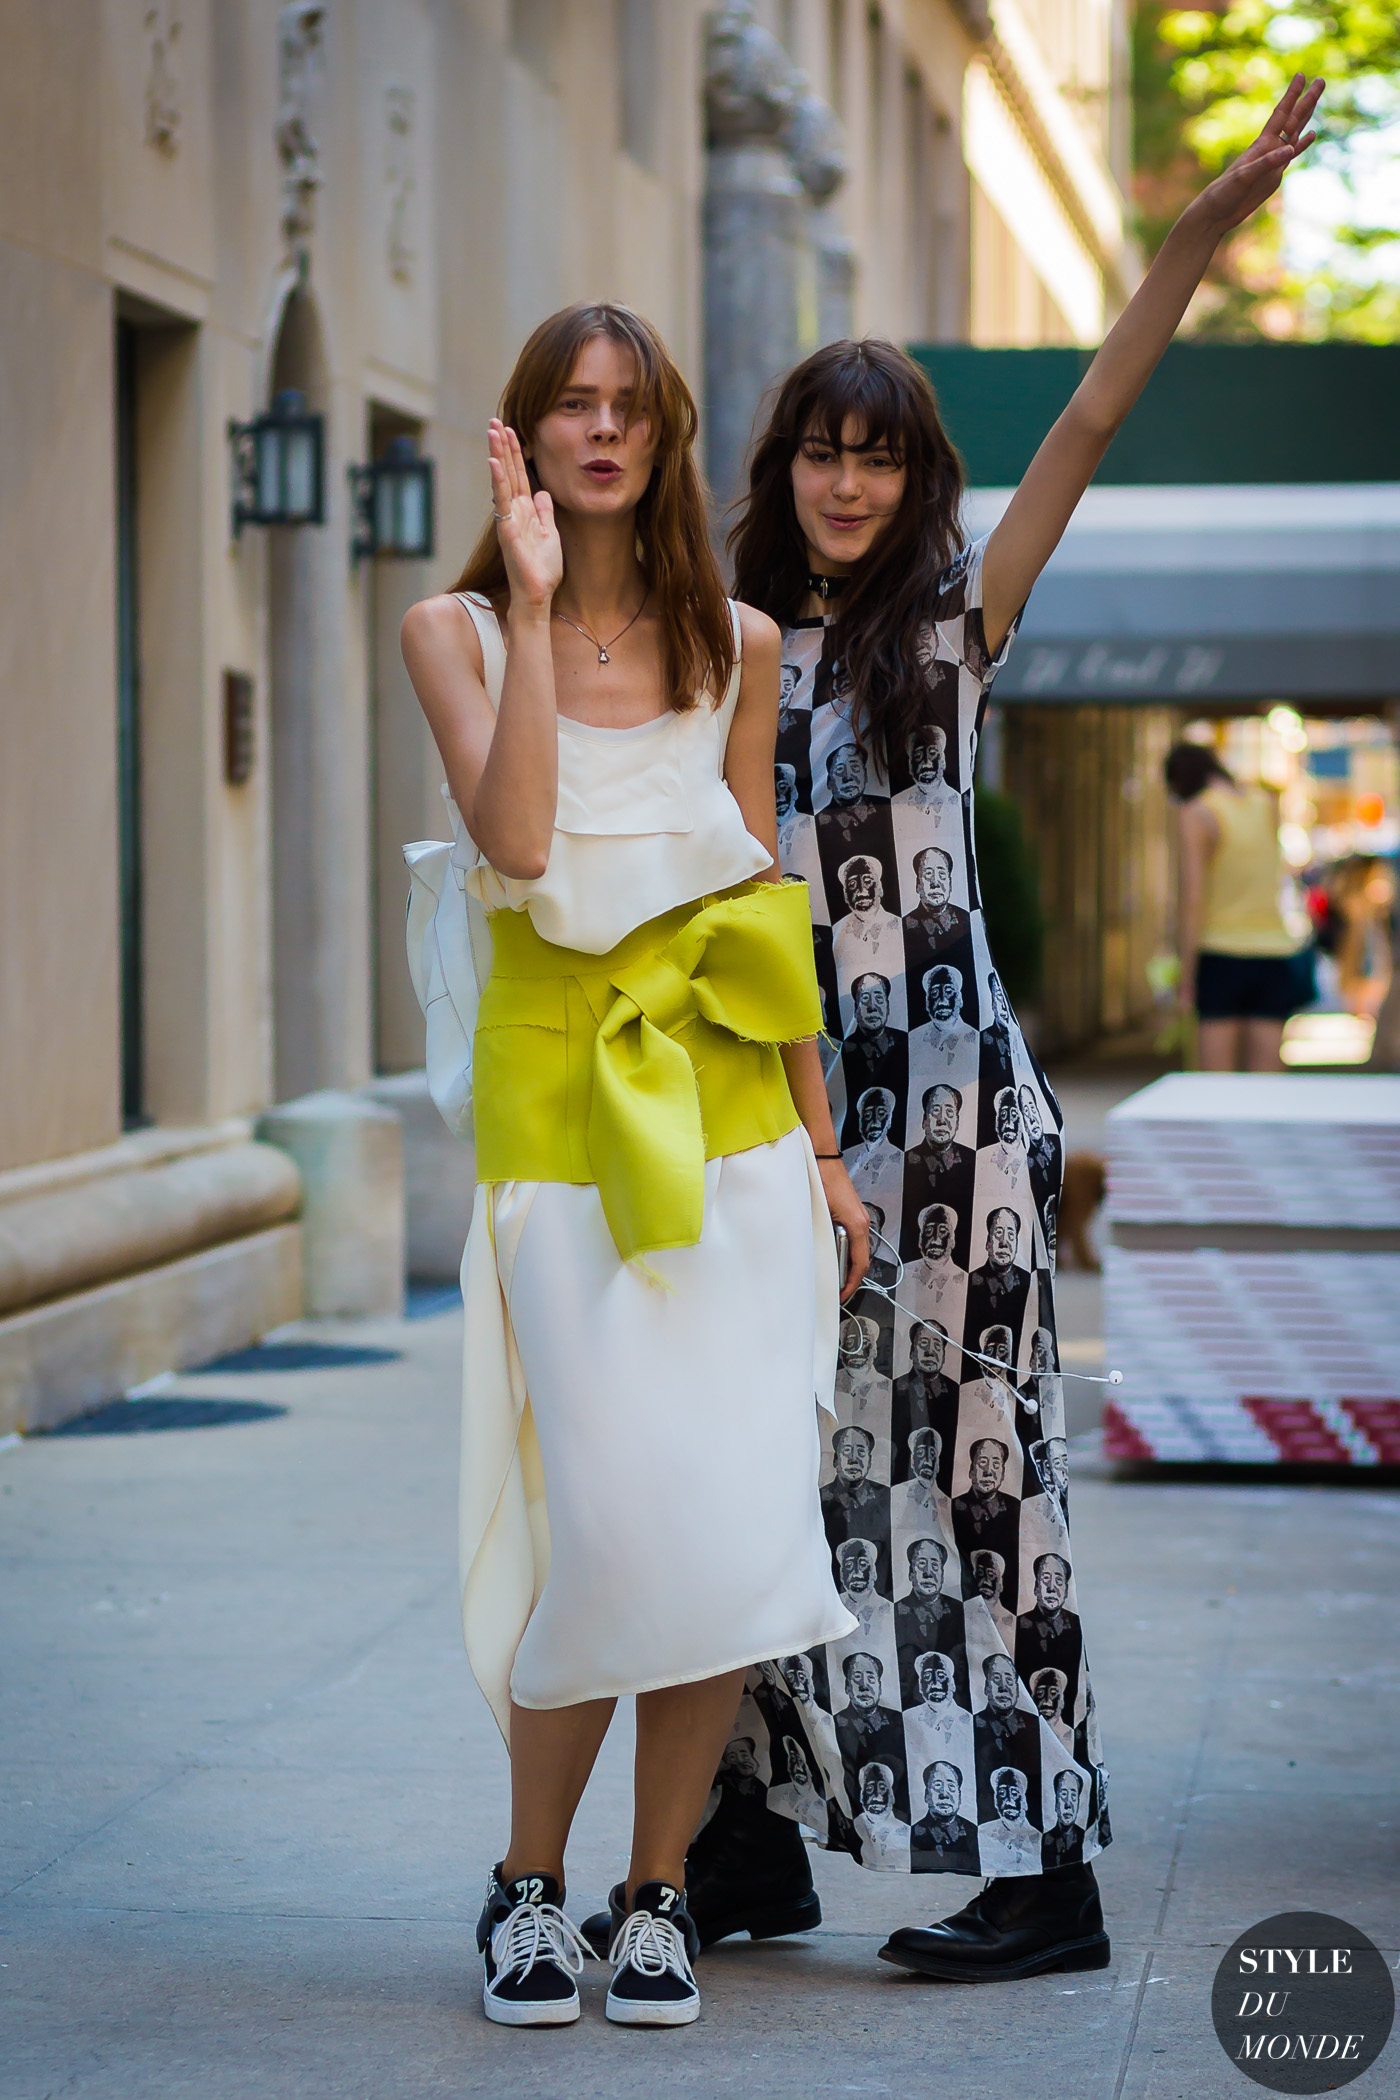 Irina Kravchenko and Irina Shnitman by STYLEDUMONDE Street Style Fashion Photography